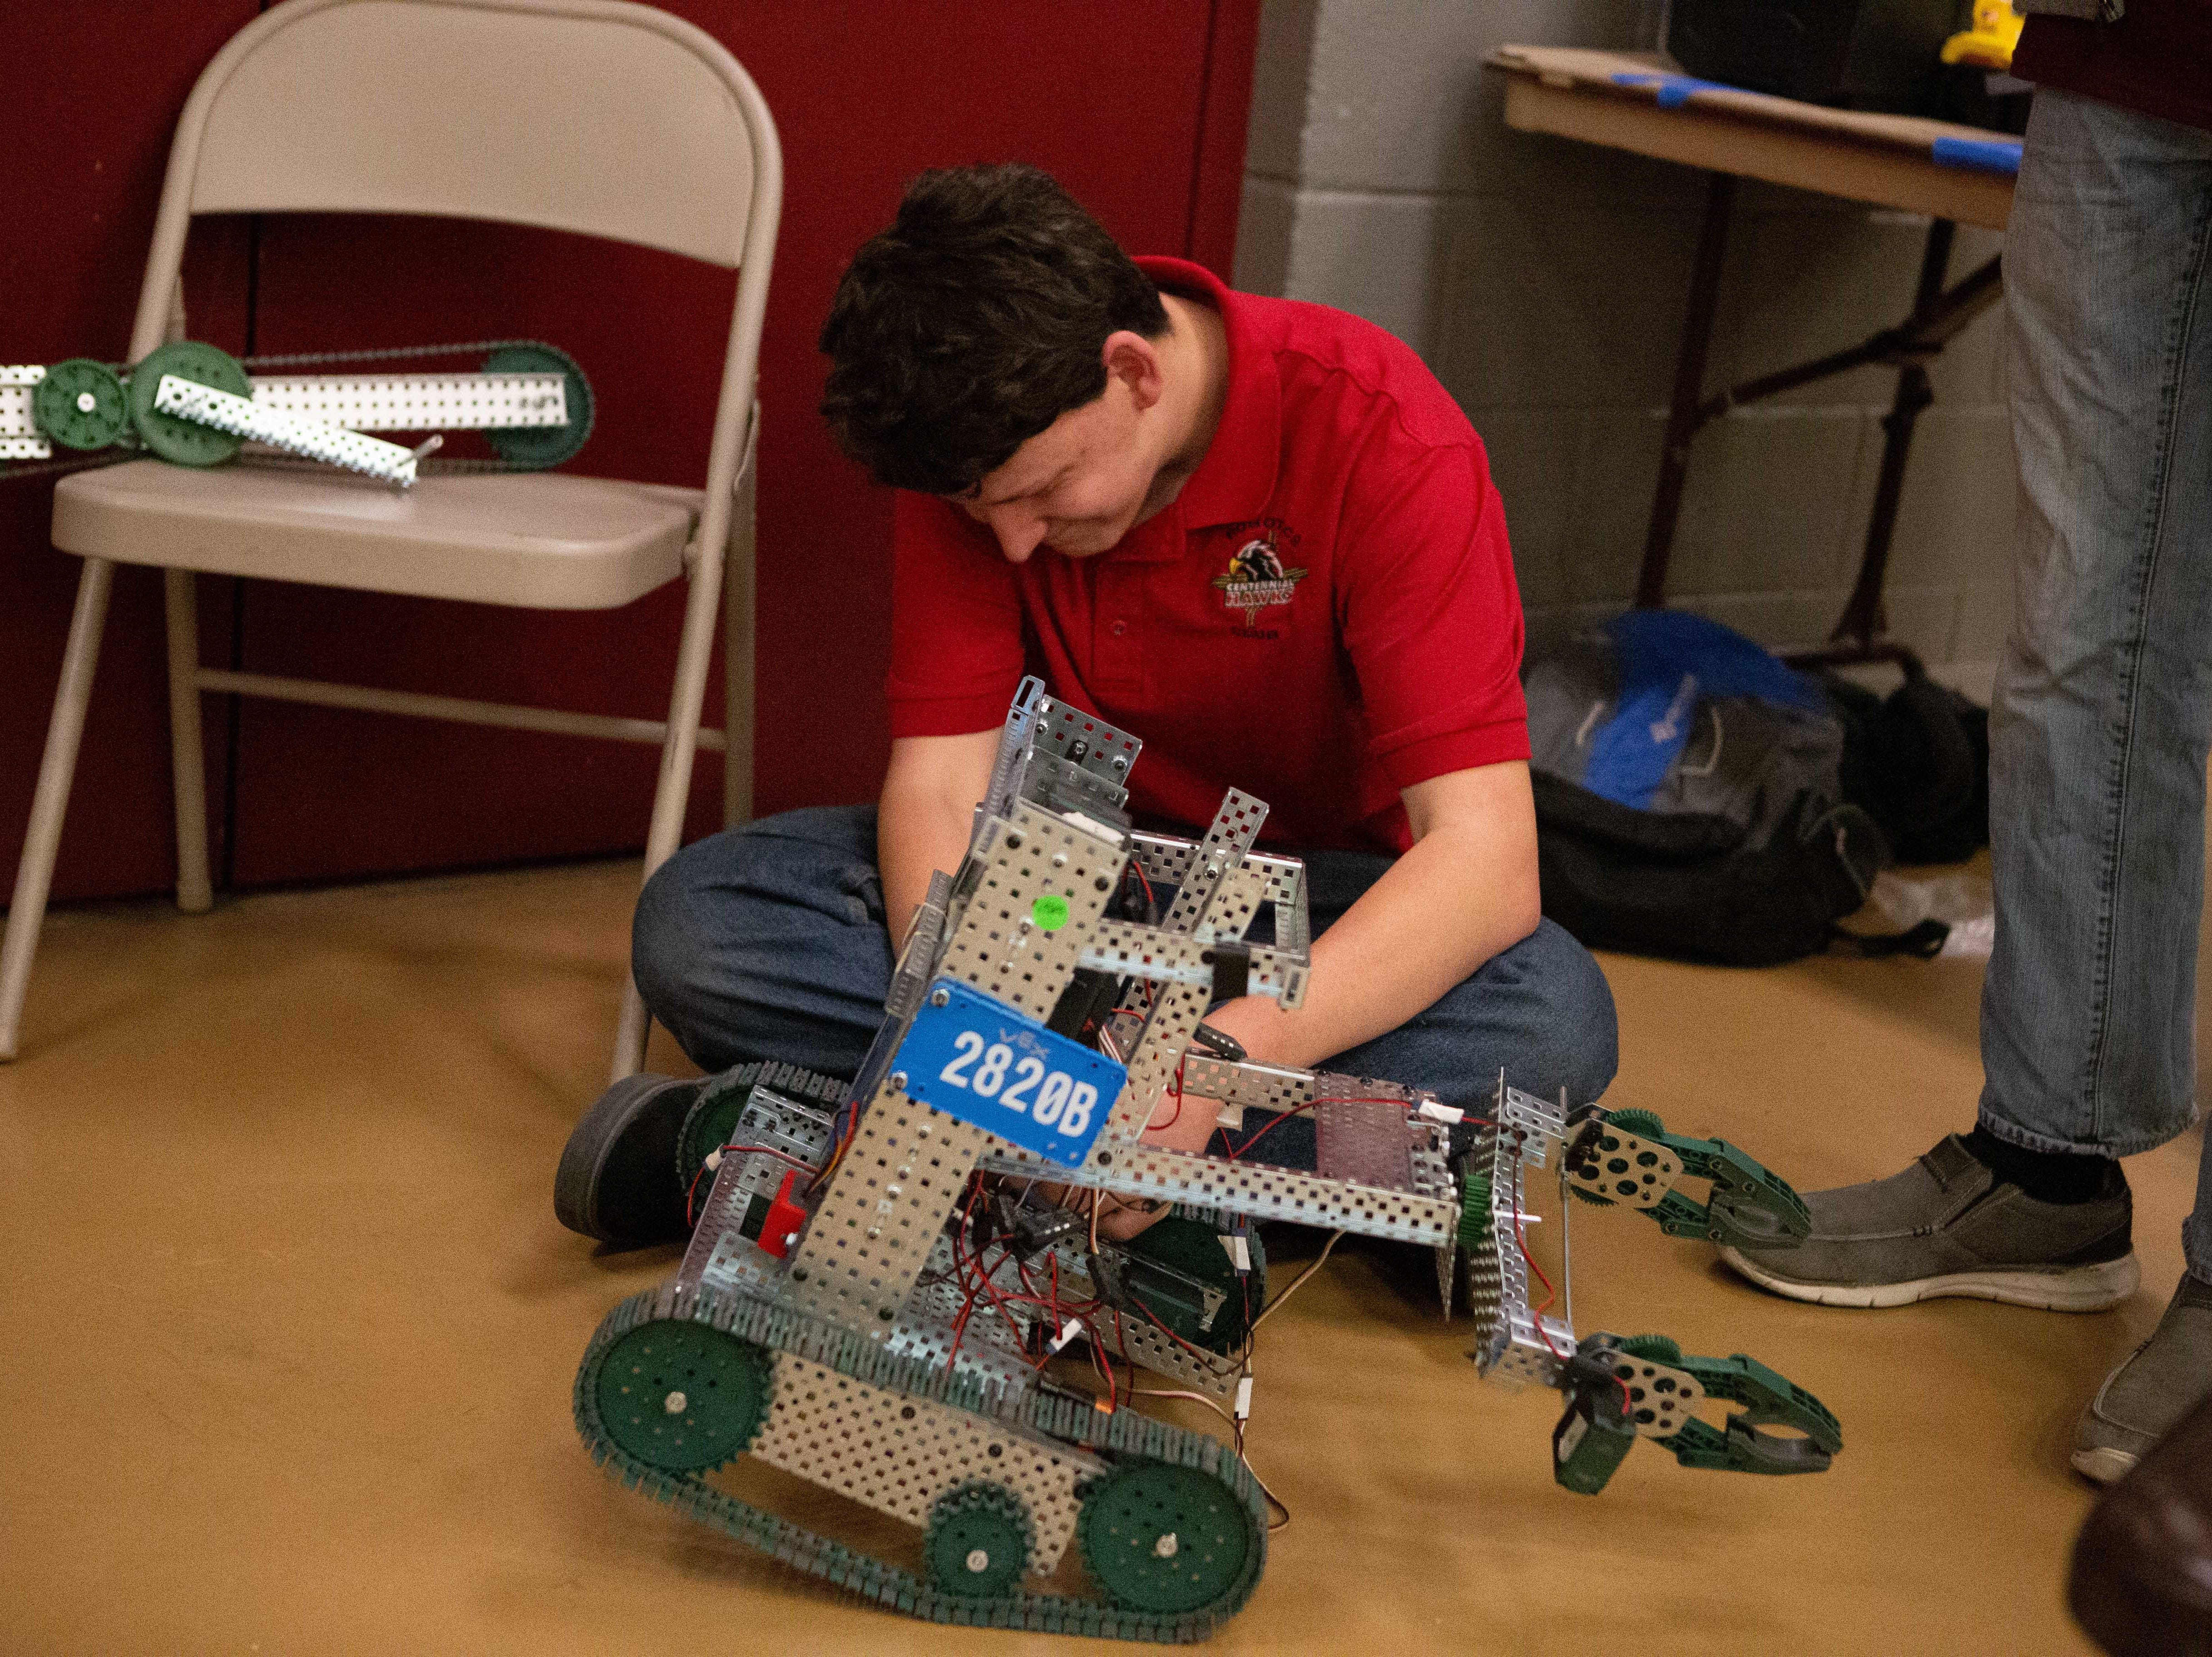 William Monger makes adjustments to the Hawk Nation robot during the VEX Robotics competition for elementary, middle and high school students, held on the NMSU campus on February 16, 2019.